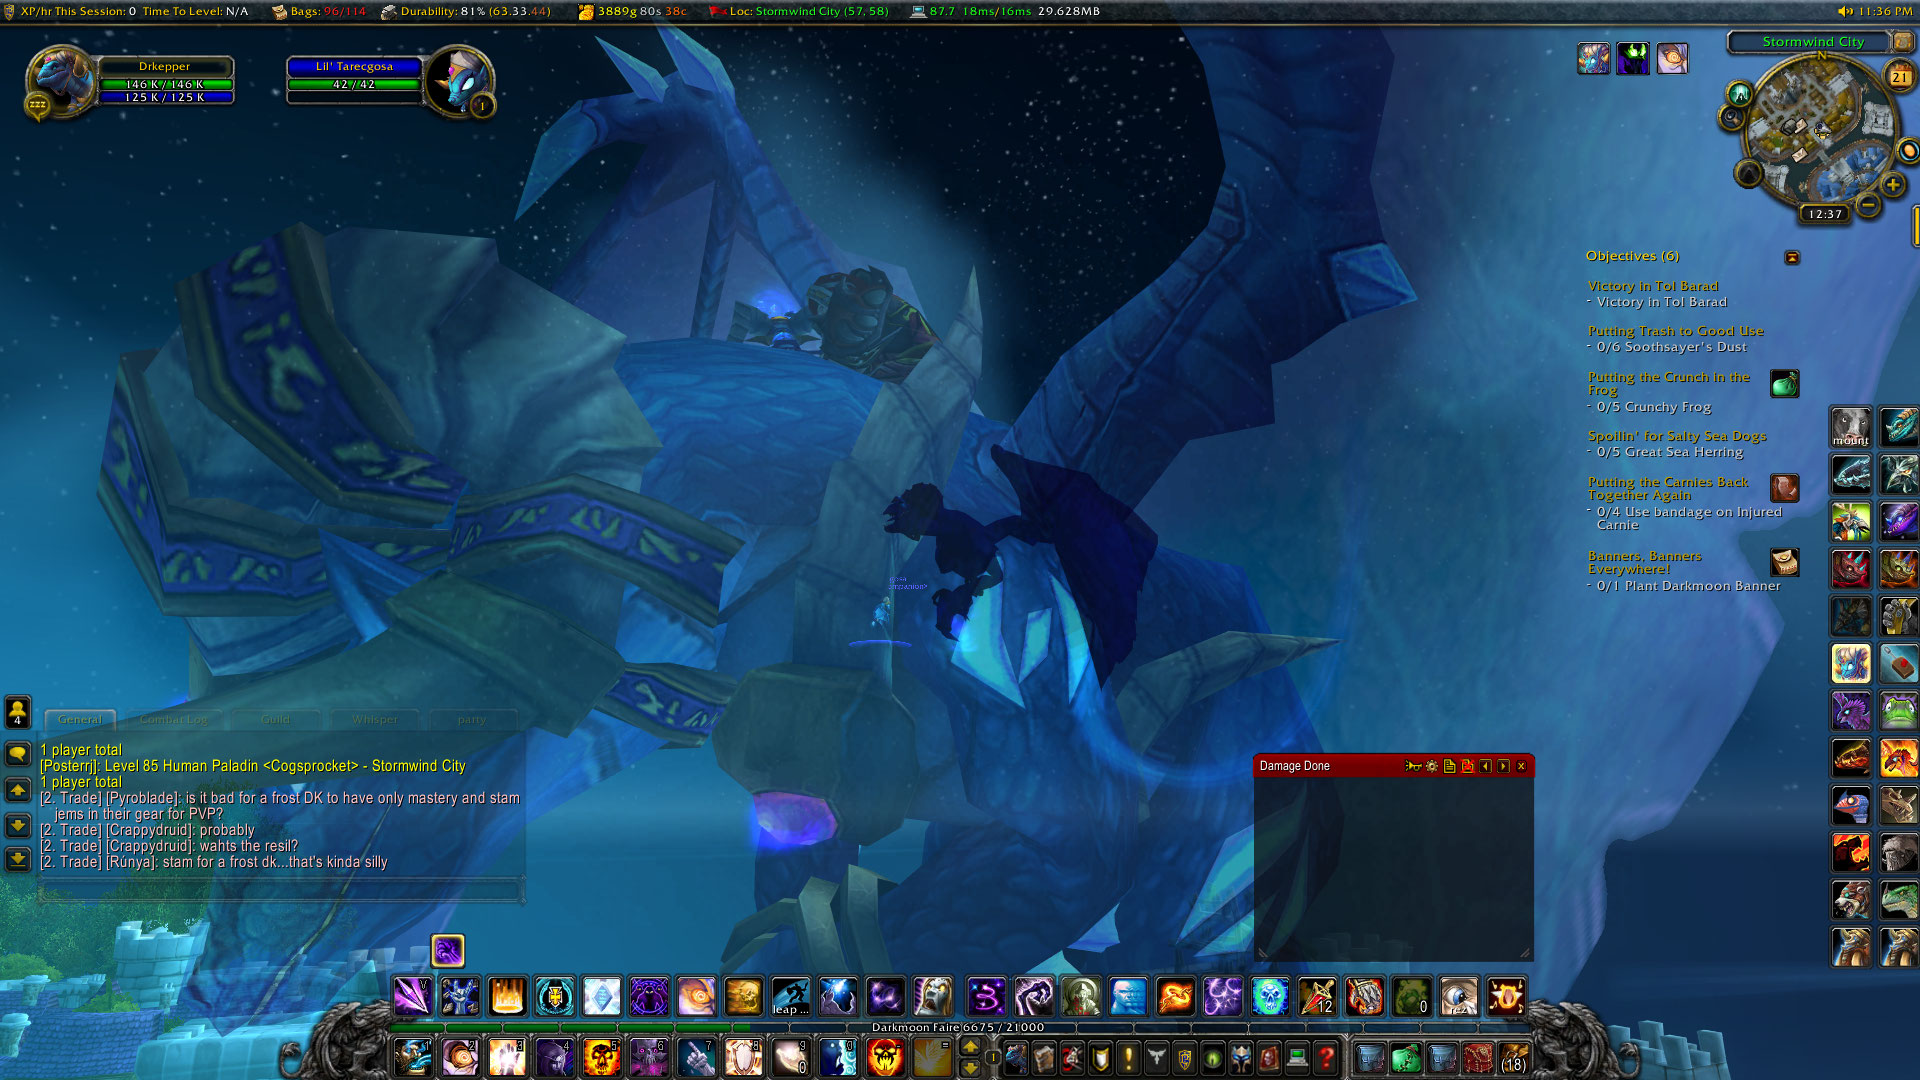 darkslitter games this first continue mount reputation grind completed that today dropped when pairs acquisition achievement hopped about forgot accomplishment thread completely over bought picked recent different drake missing netherwing